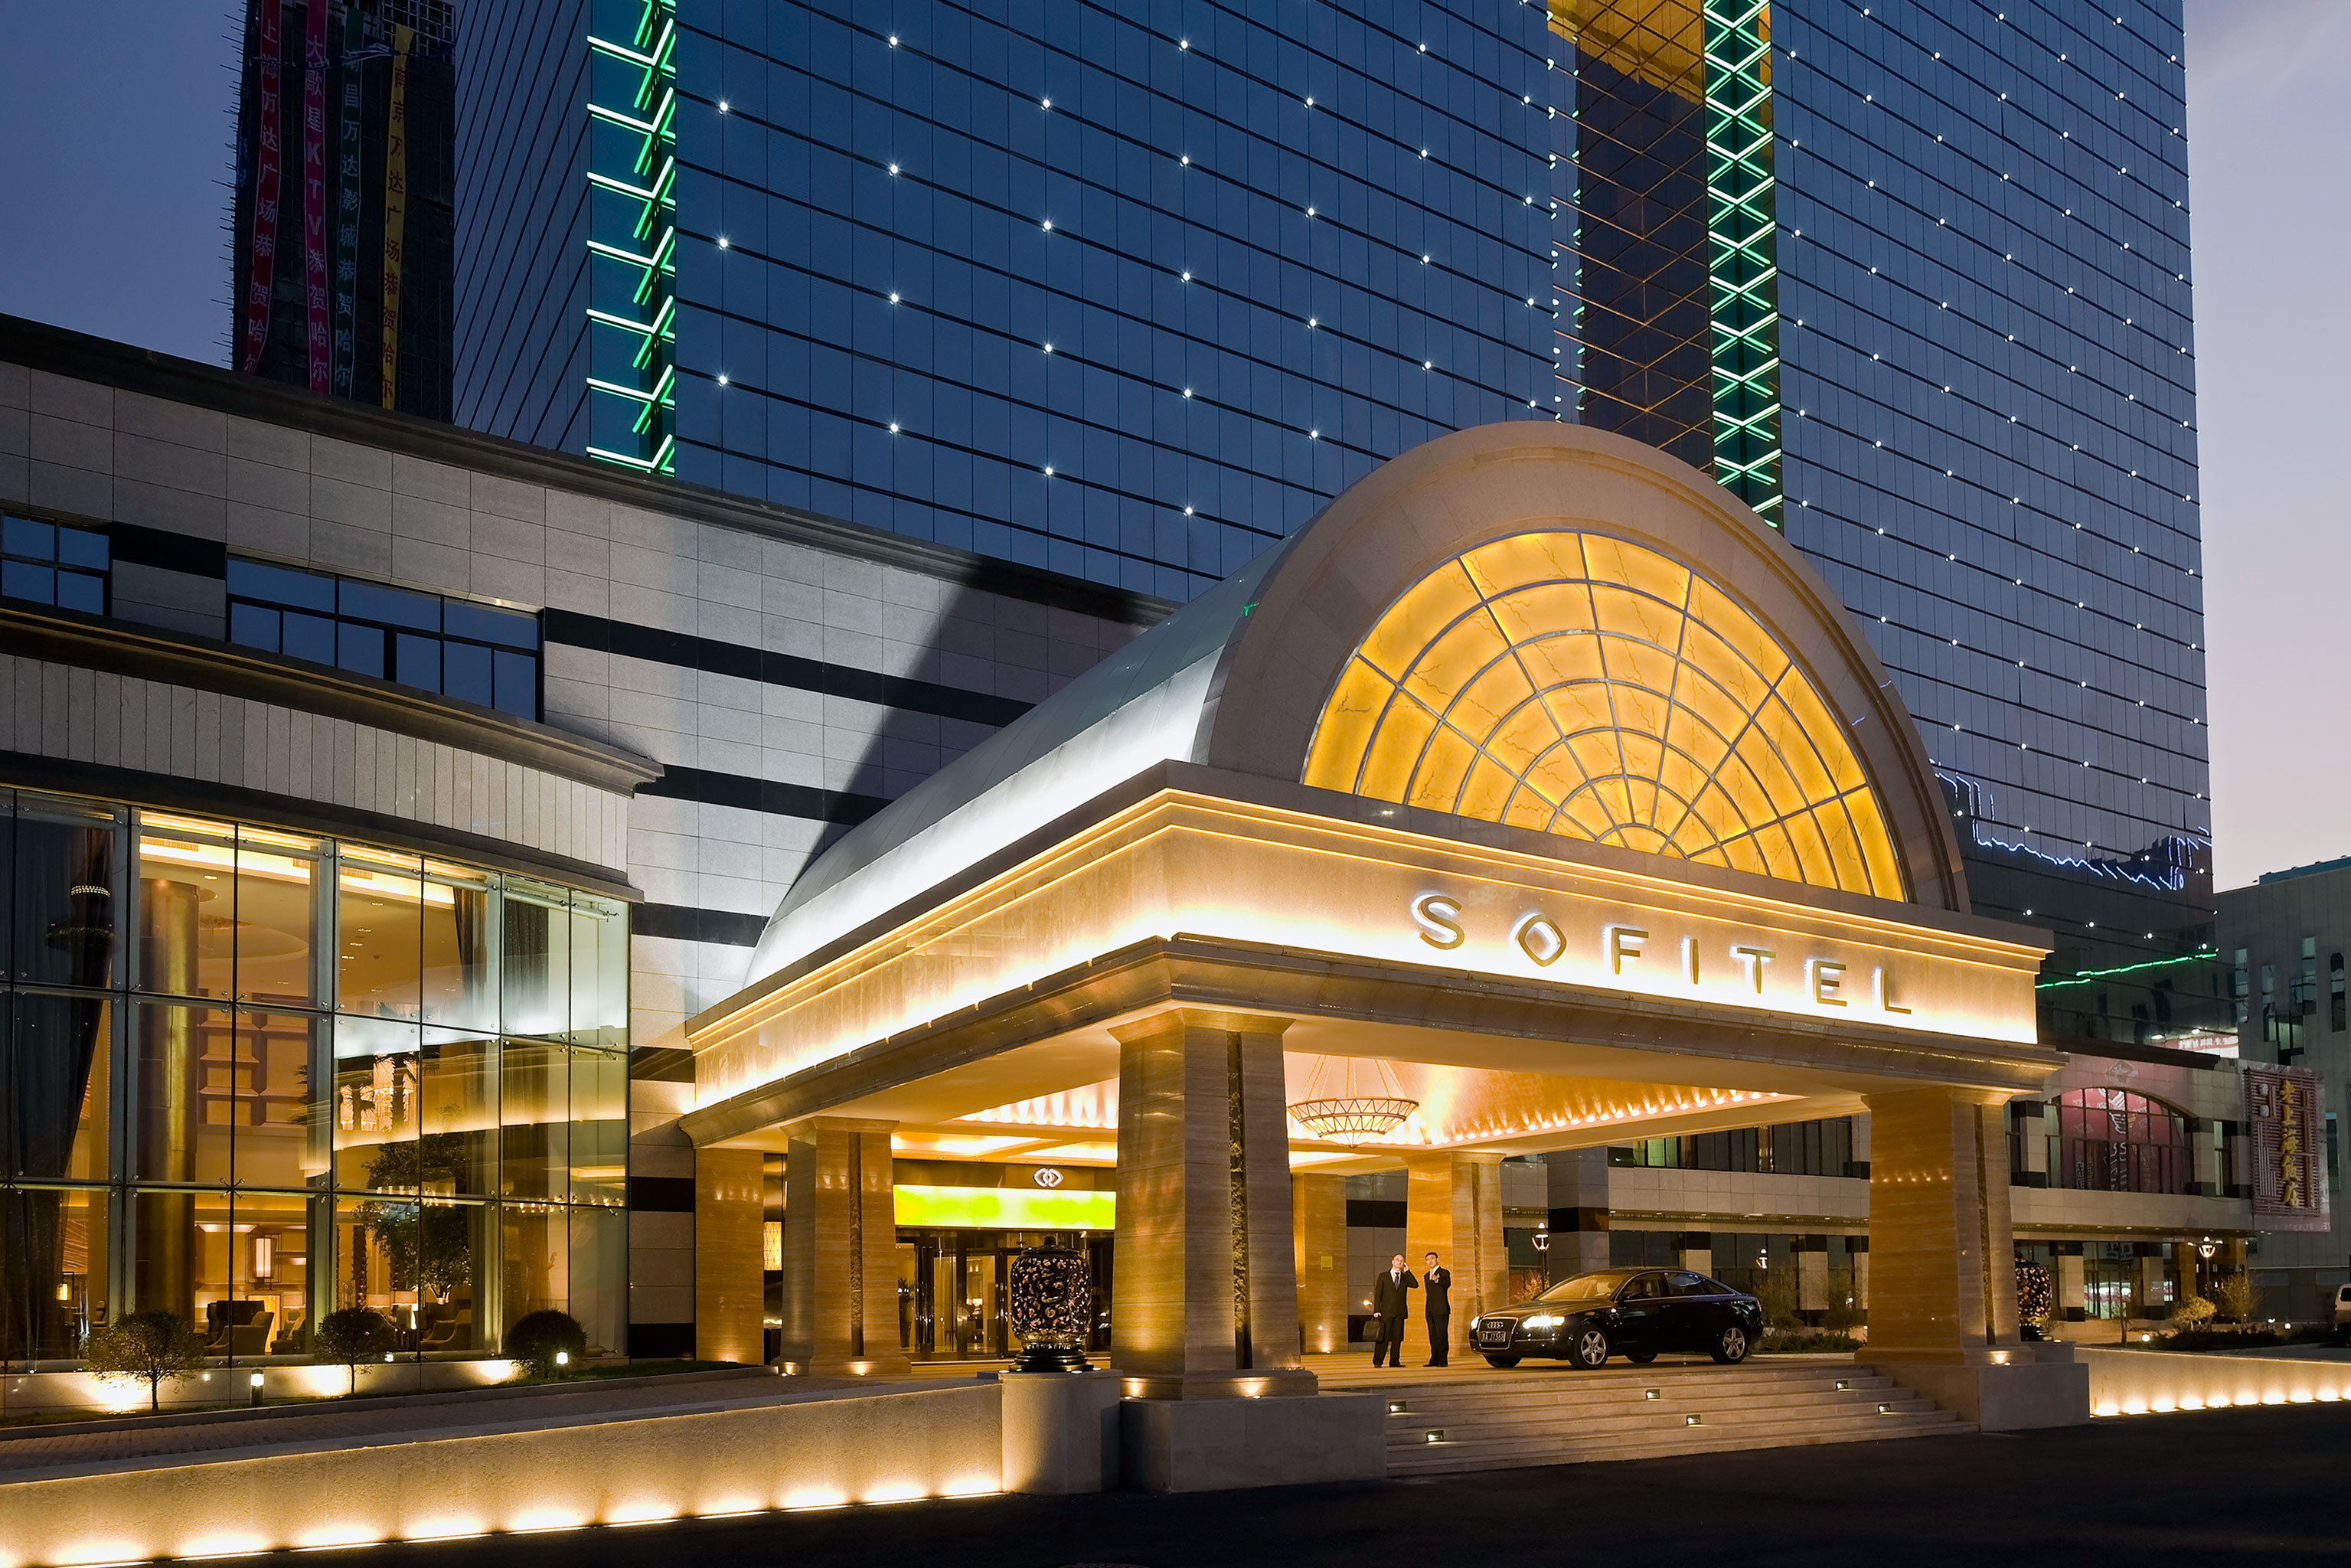 Architecture Buildings Classic Exterior Resort building metropolitan area landmark shopping mall night Downtown plaza convention center retail City